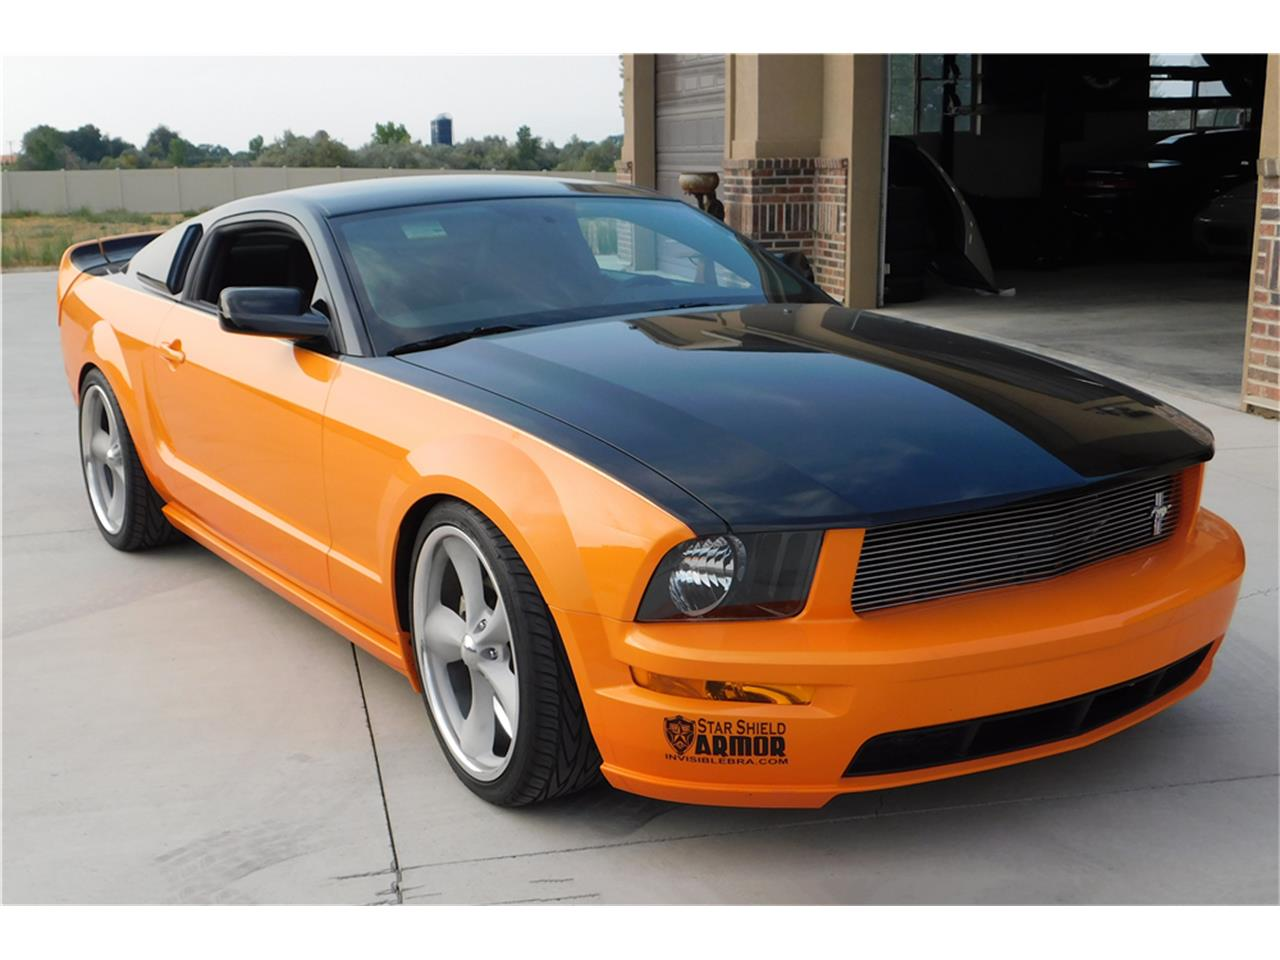 Large picture of 07 mustang gt of1d